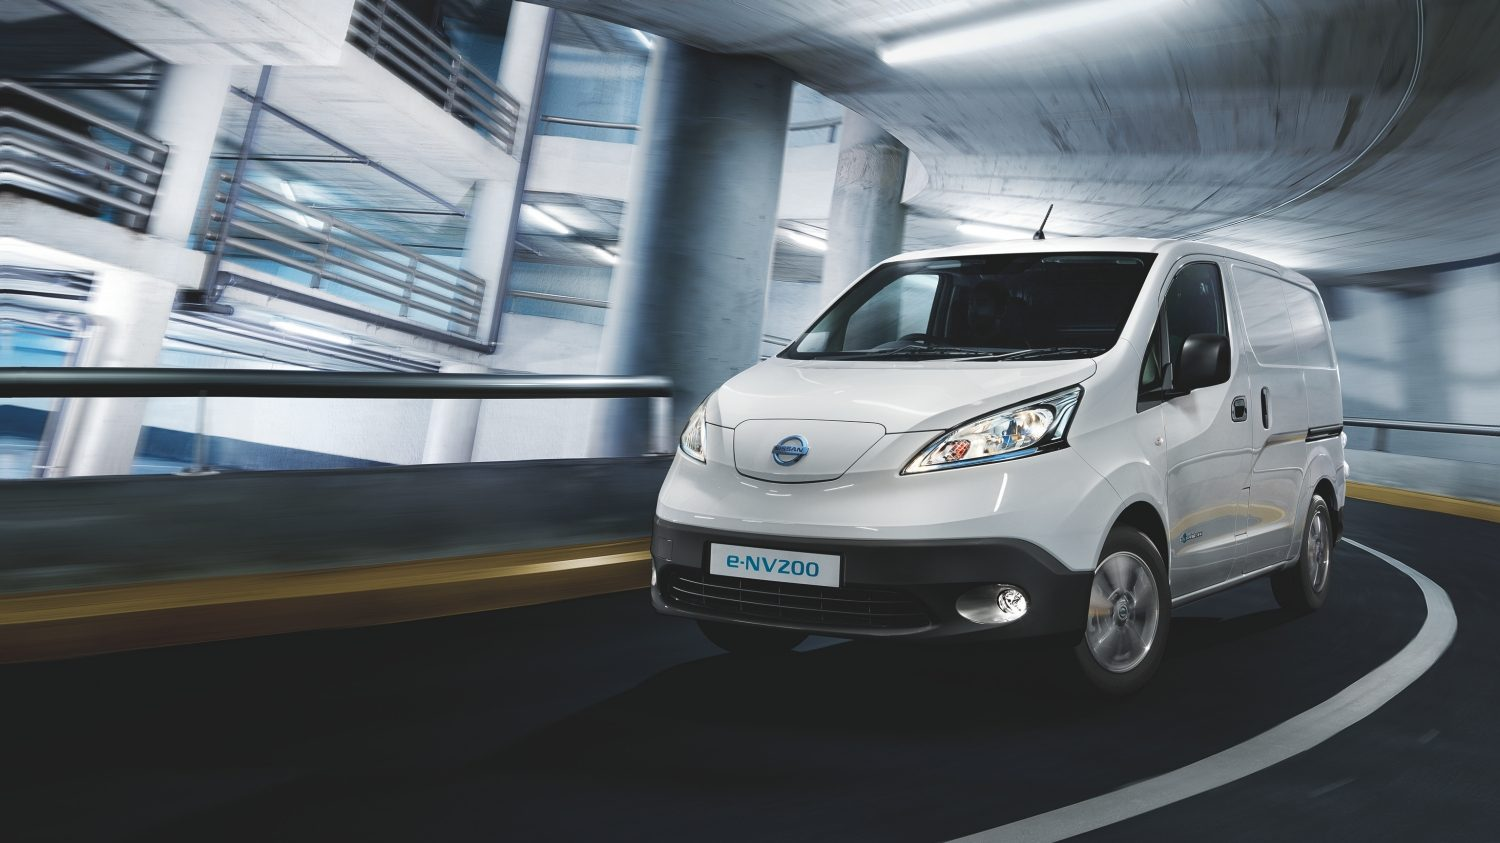 NISSAN e-NV200 – Vista frontale dell'e-NV200 in curva